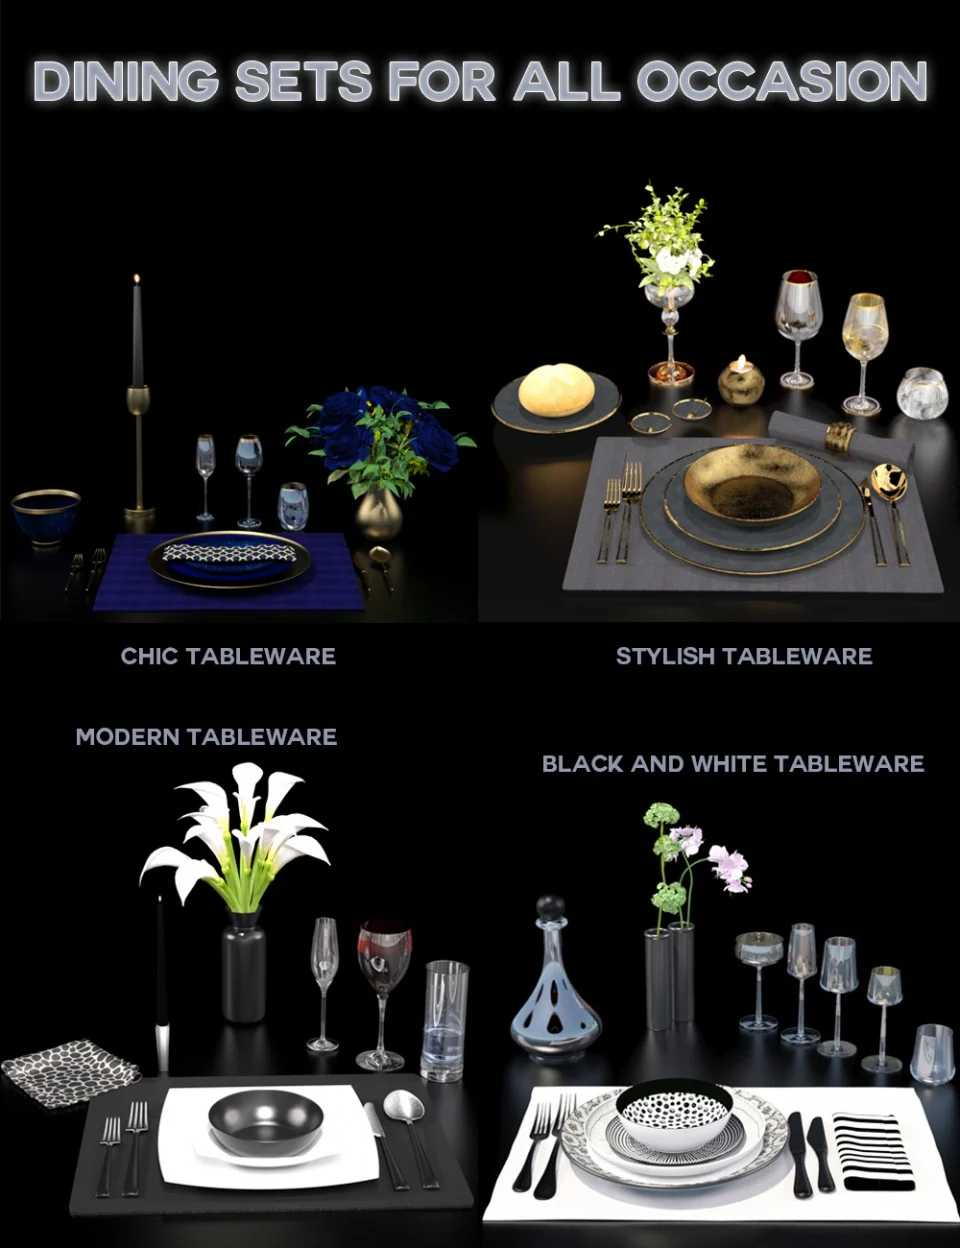 Dining Sets for All Occasions